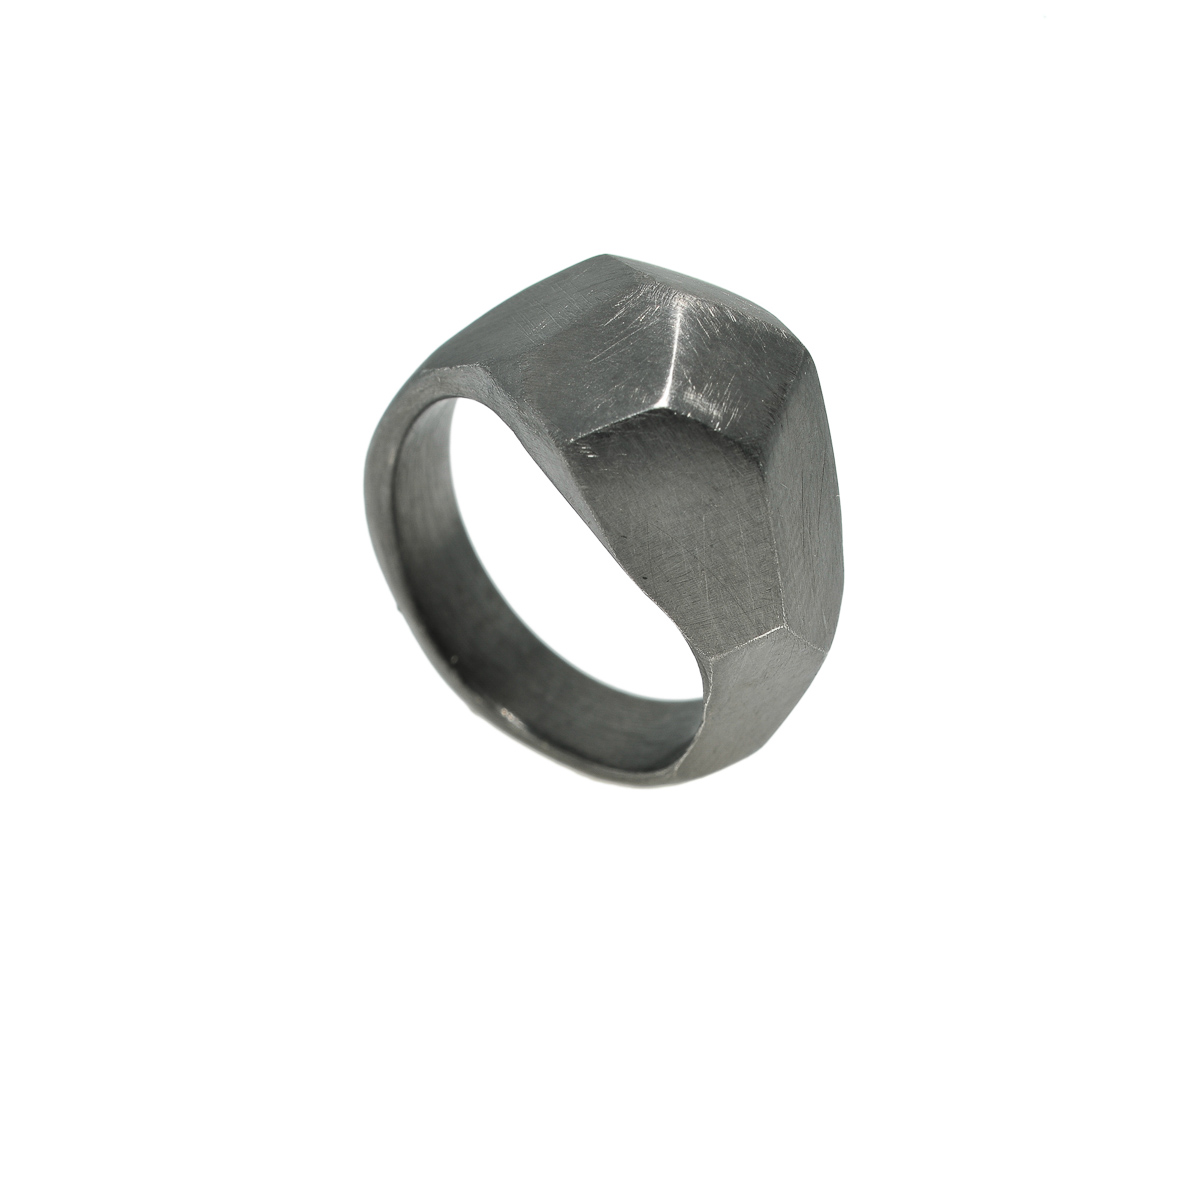 Large polygonal ring is part of the experimental collection. The polygonal ring was designed and made by Katerina Glinou. Material is silver rhodium plated.